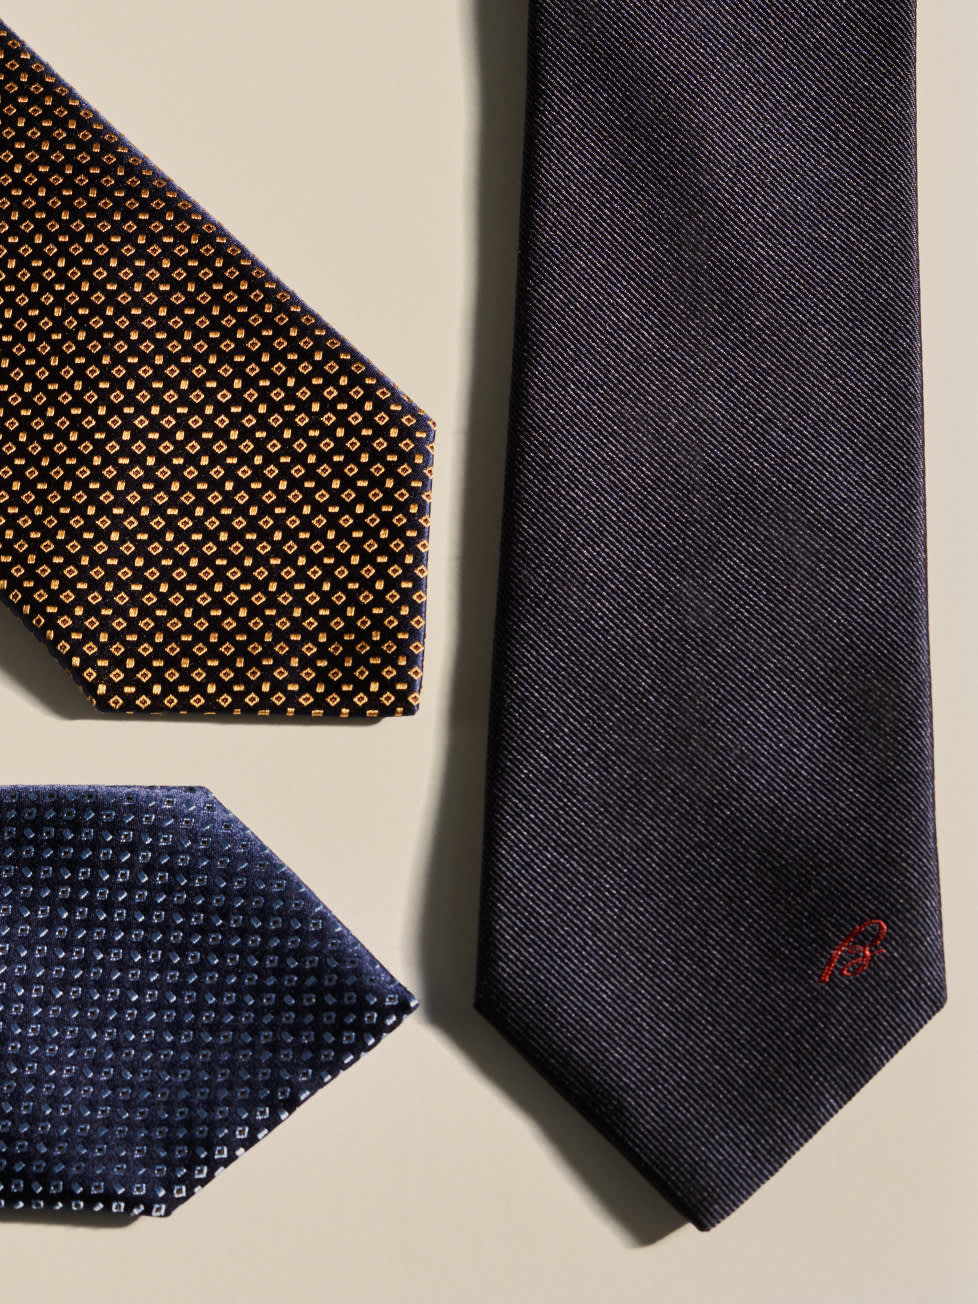 Three Brioni made-to-order ties in different fabrics and patterns